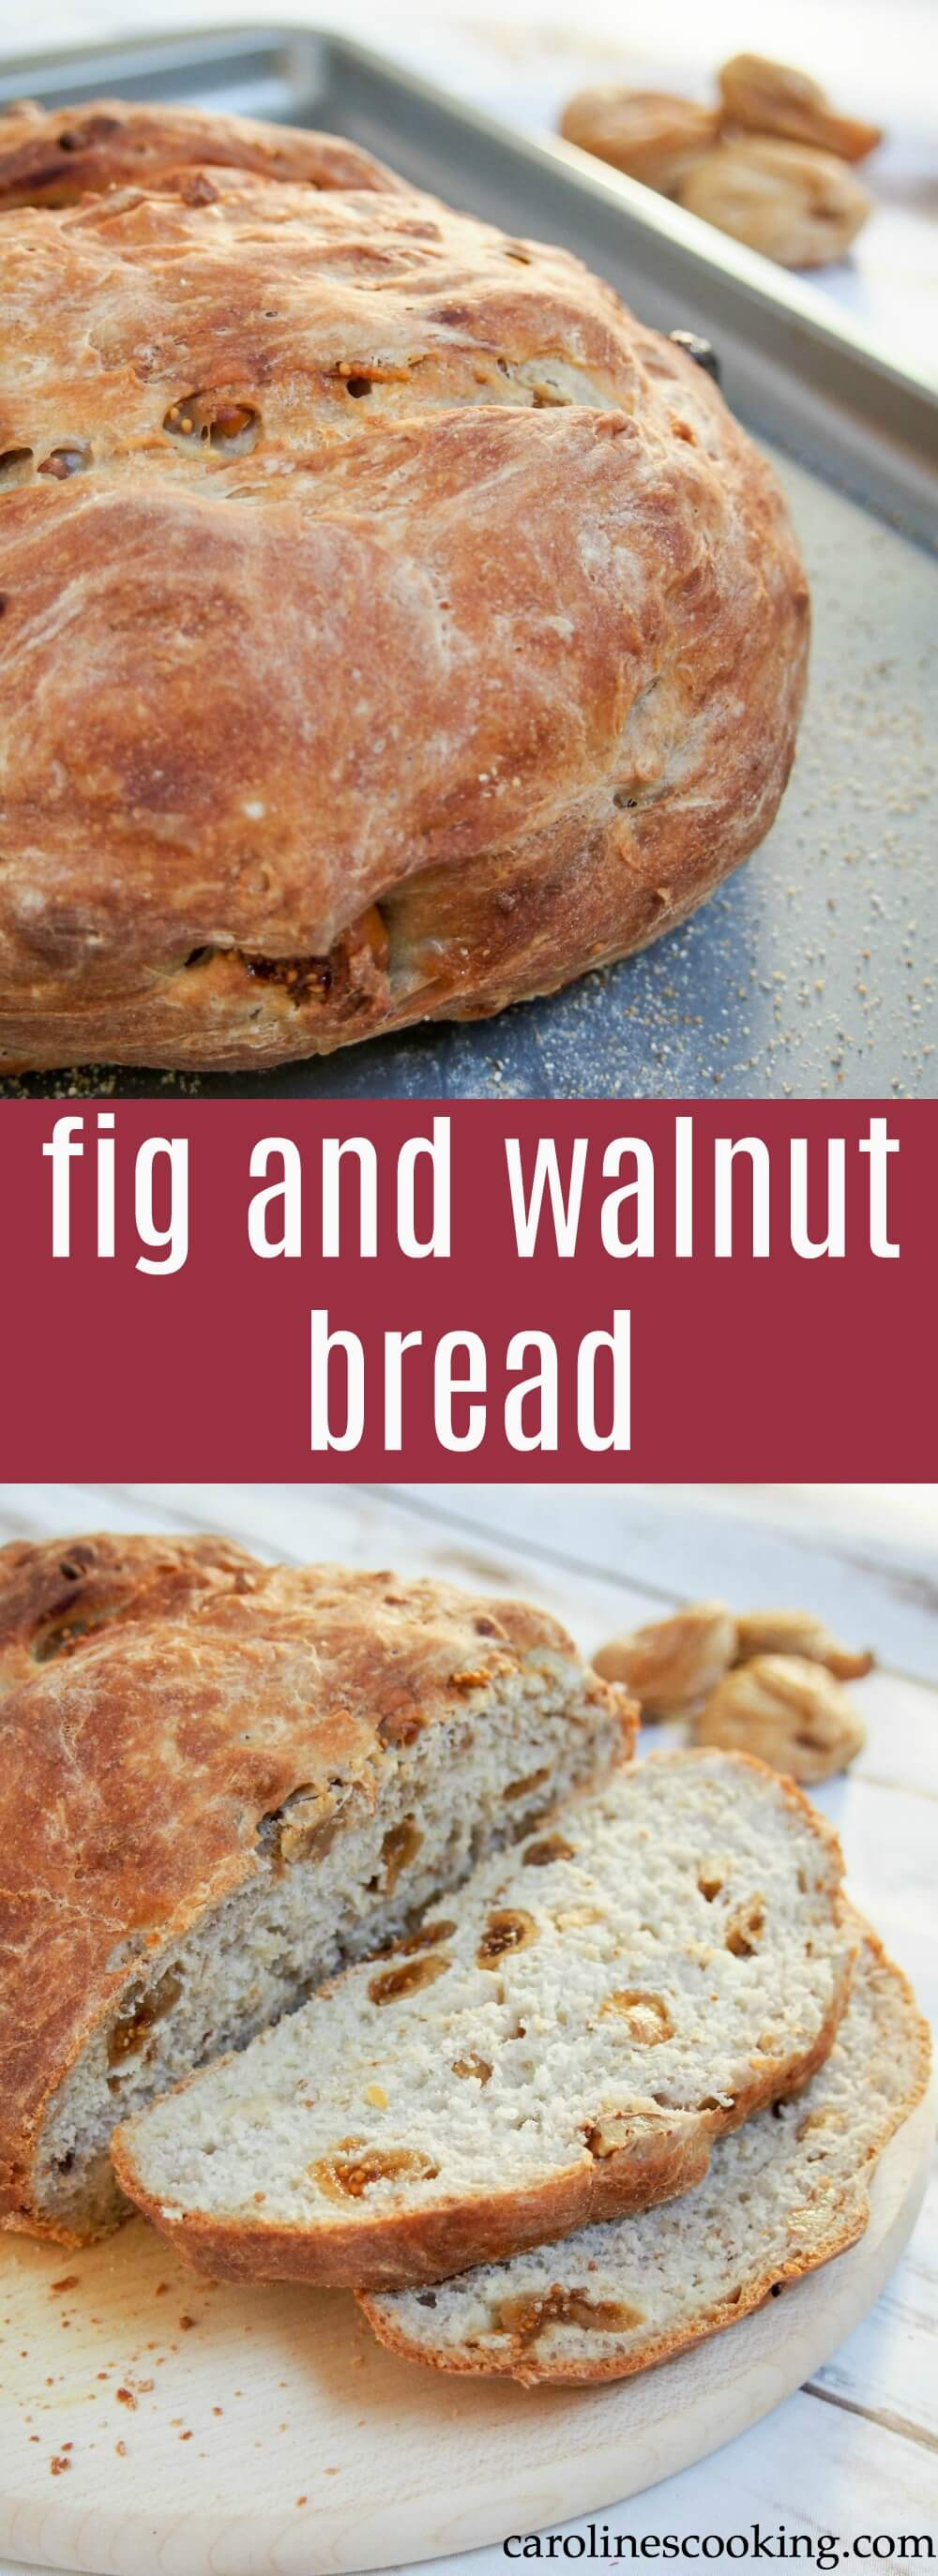 This fig and walnut bread is a tasty white loaf with a twist. It's easy to make and the fruity and nutty bites make it into a slightly special everyday bread. #bread #homemadebread